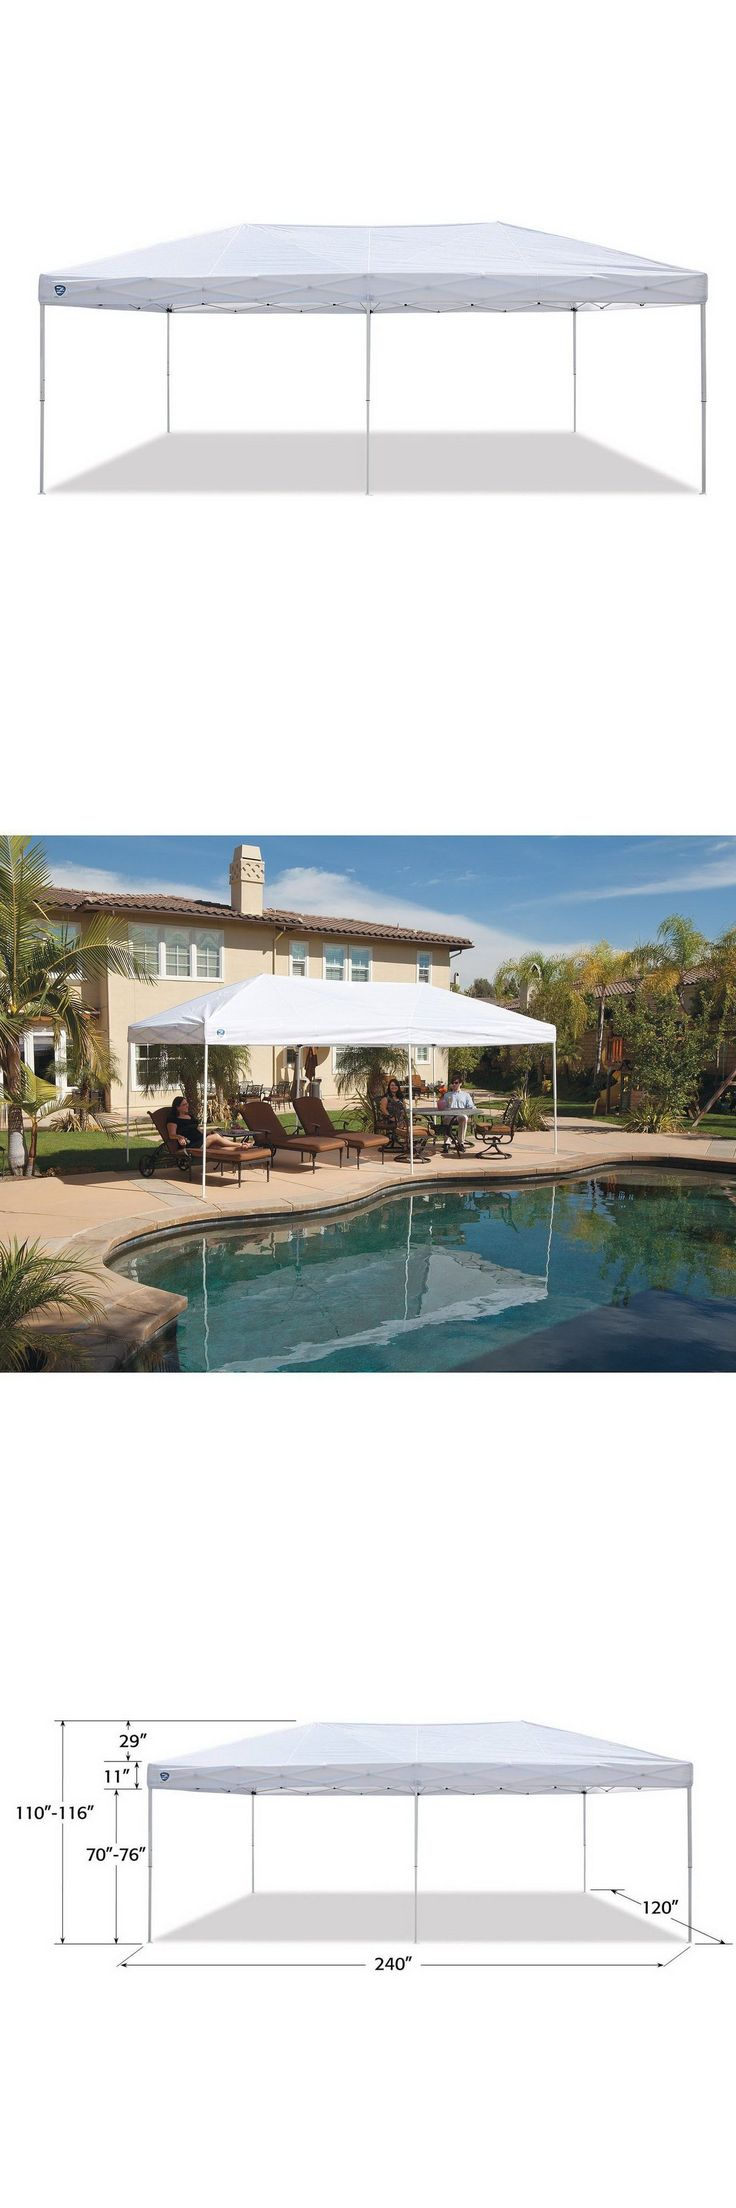 Canopies and Shelters 179011: 10 X 20 Pop Up Instant Canopy Shade Shelter Z-Shade Event Party Vendor Tent -> BUY IT NOW ONLY: $239.89 on eBay!